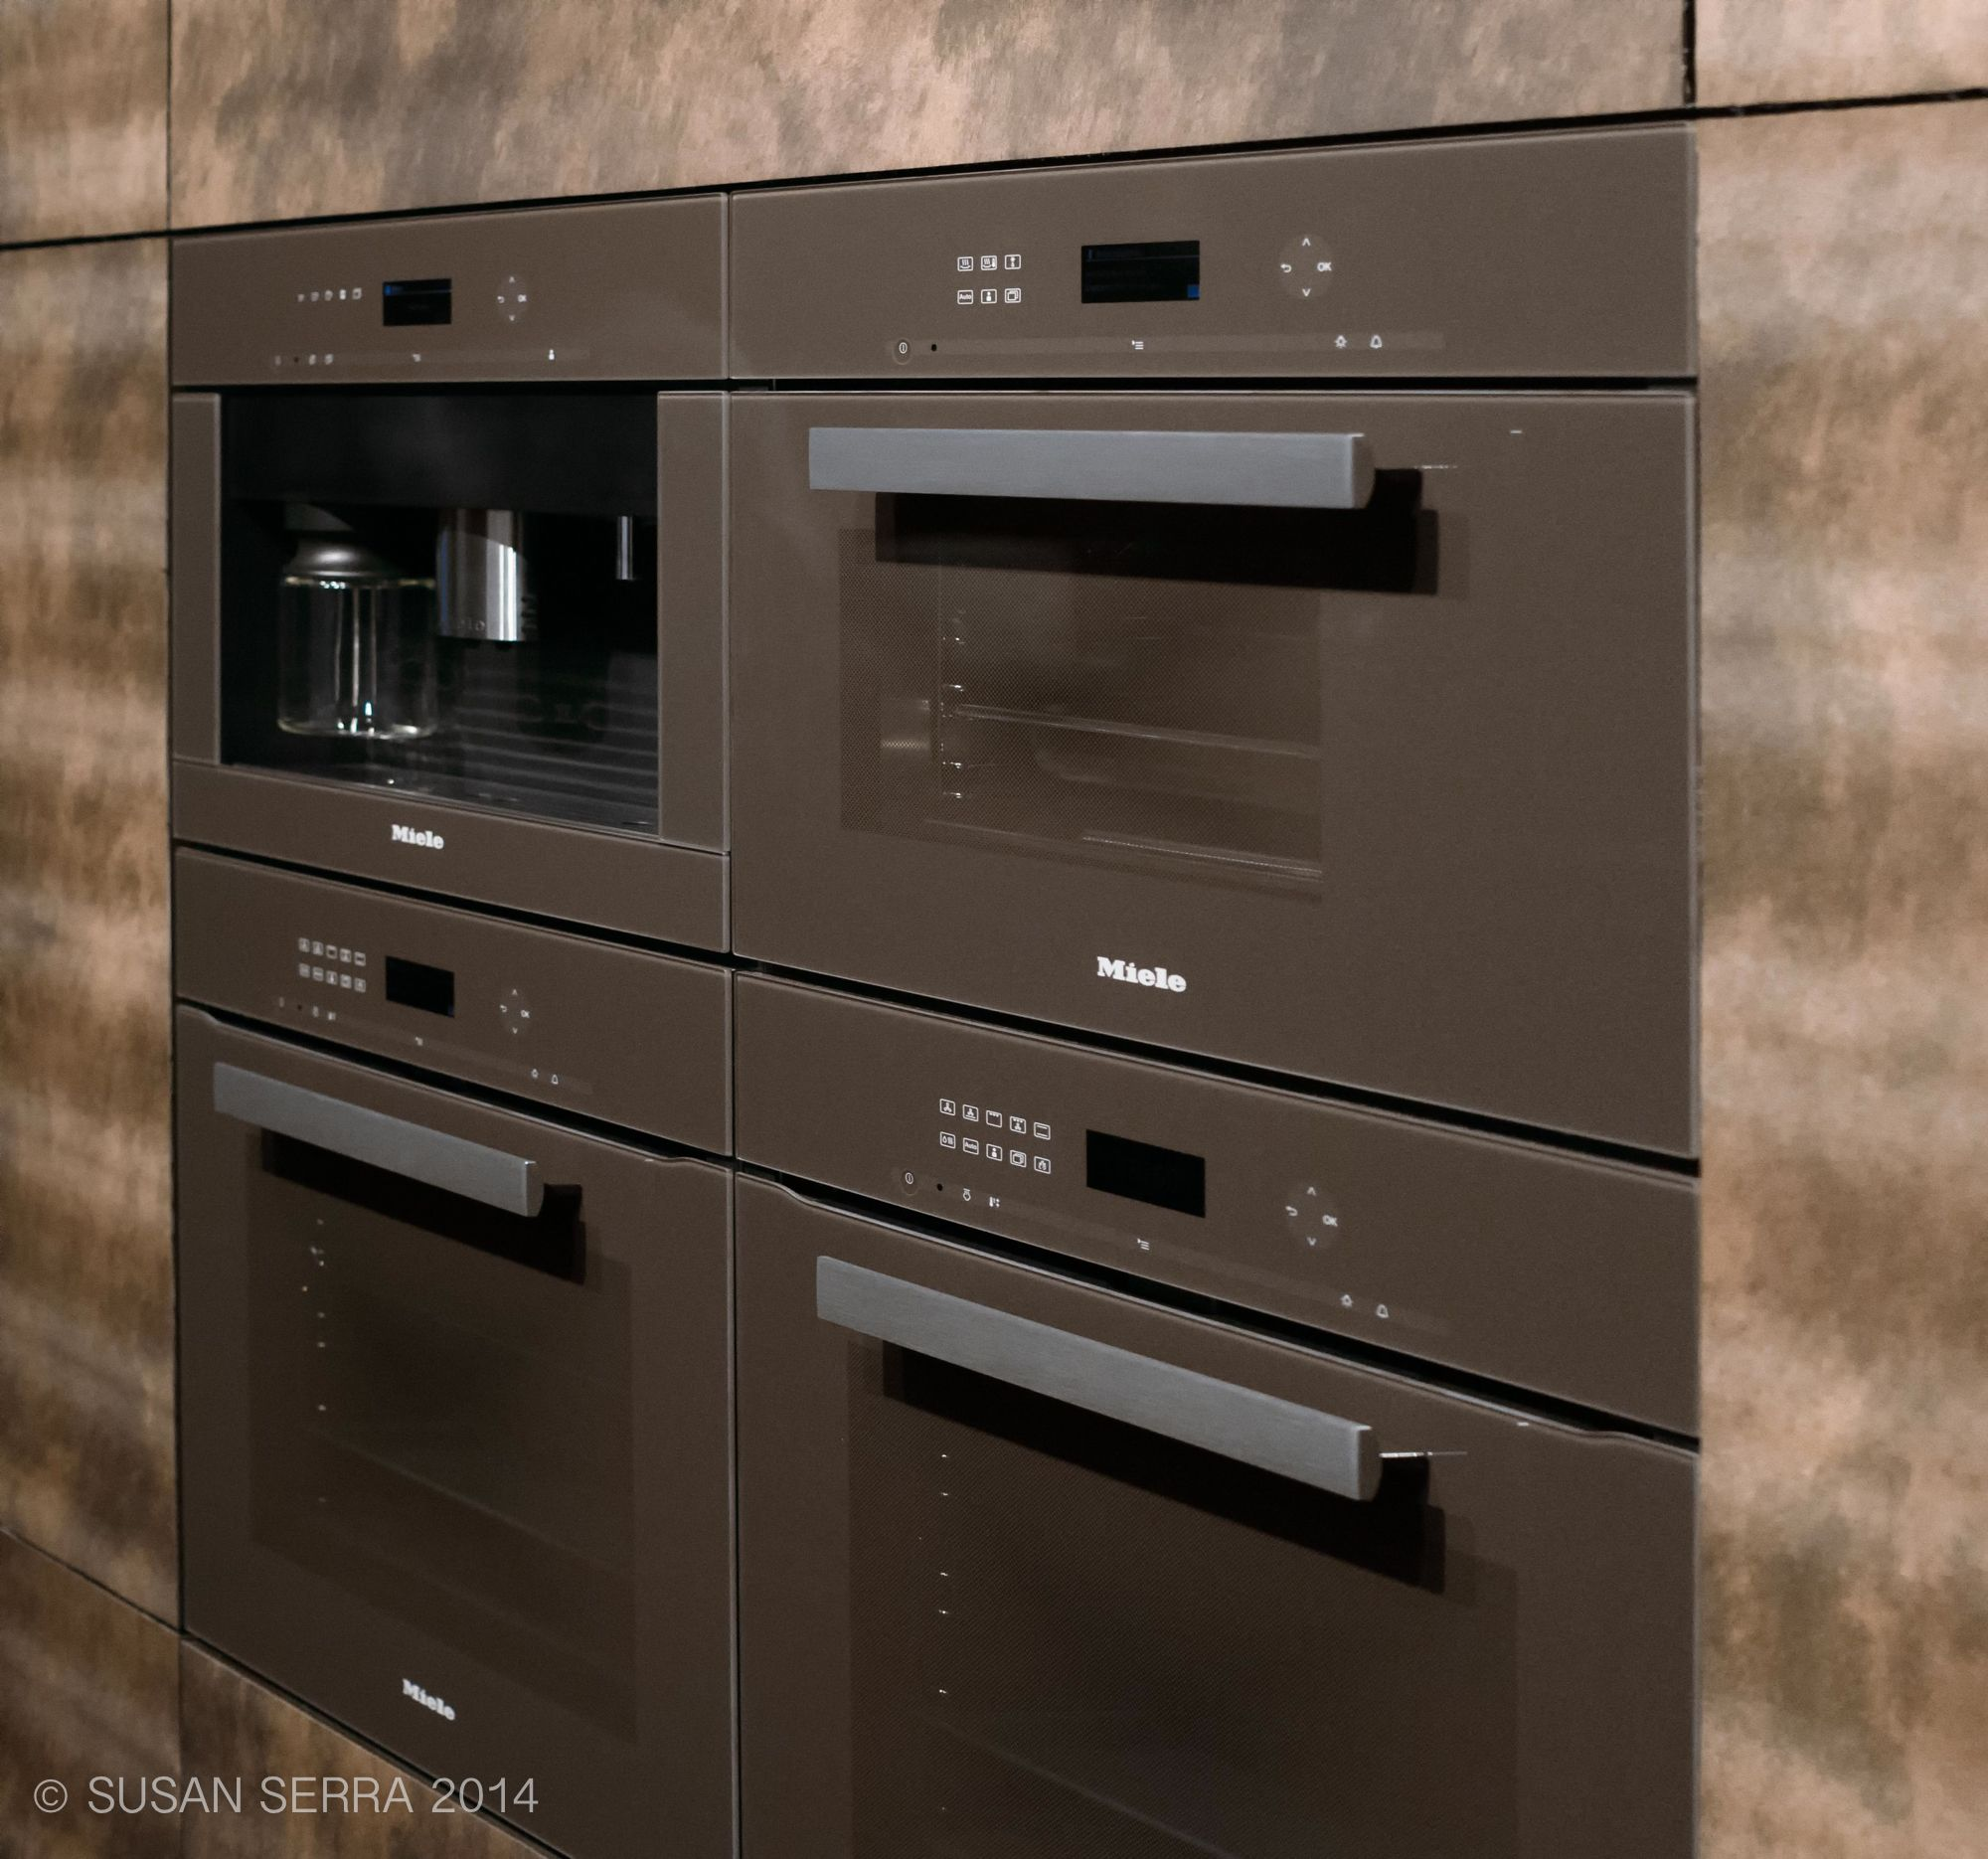 Warm Modern Appliances Trend - Warm colors, glass fronts, beautiful ...